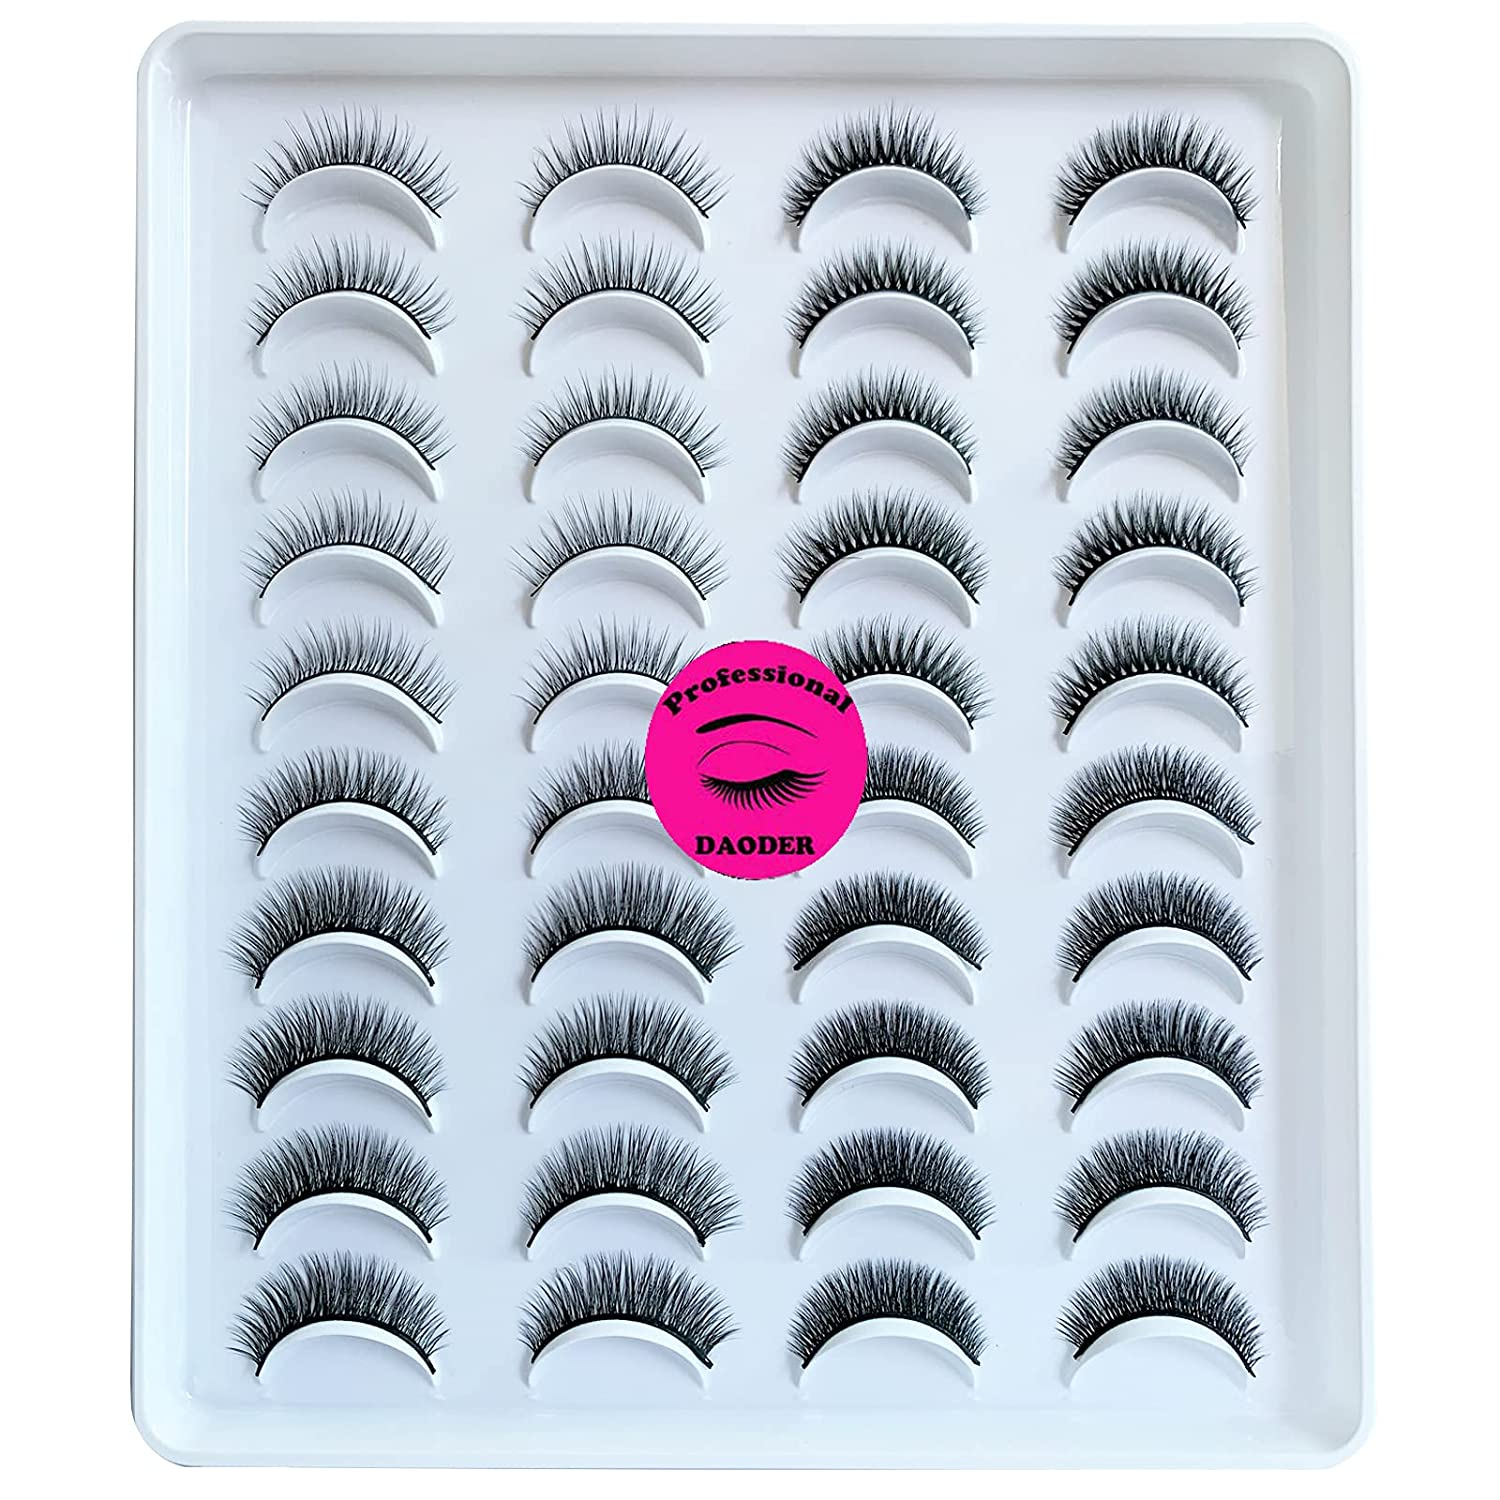 DAODER Online limited product Eyelashes Sales for sale False Lashes Natural Thick Faux Mink Look Short